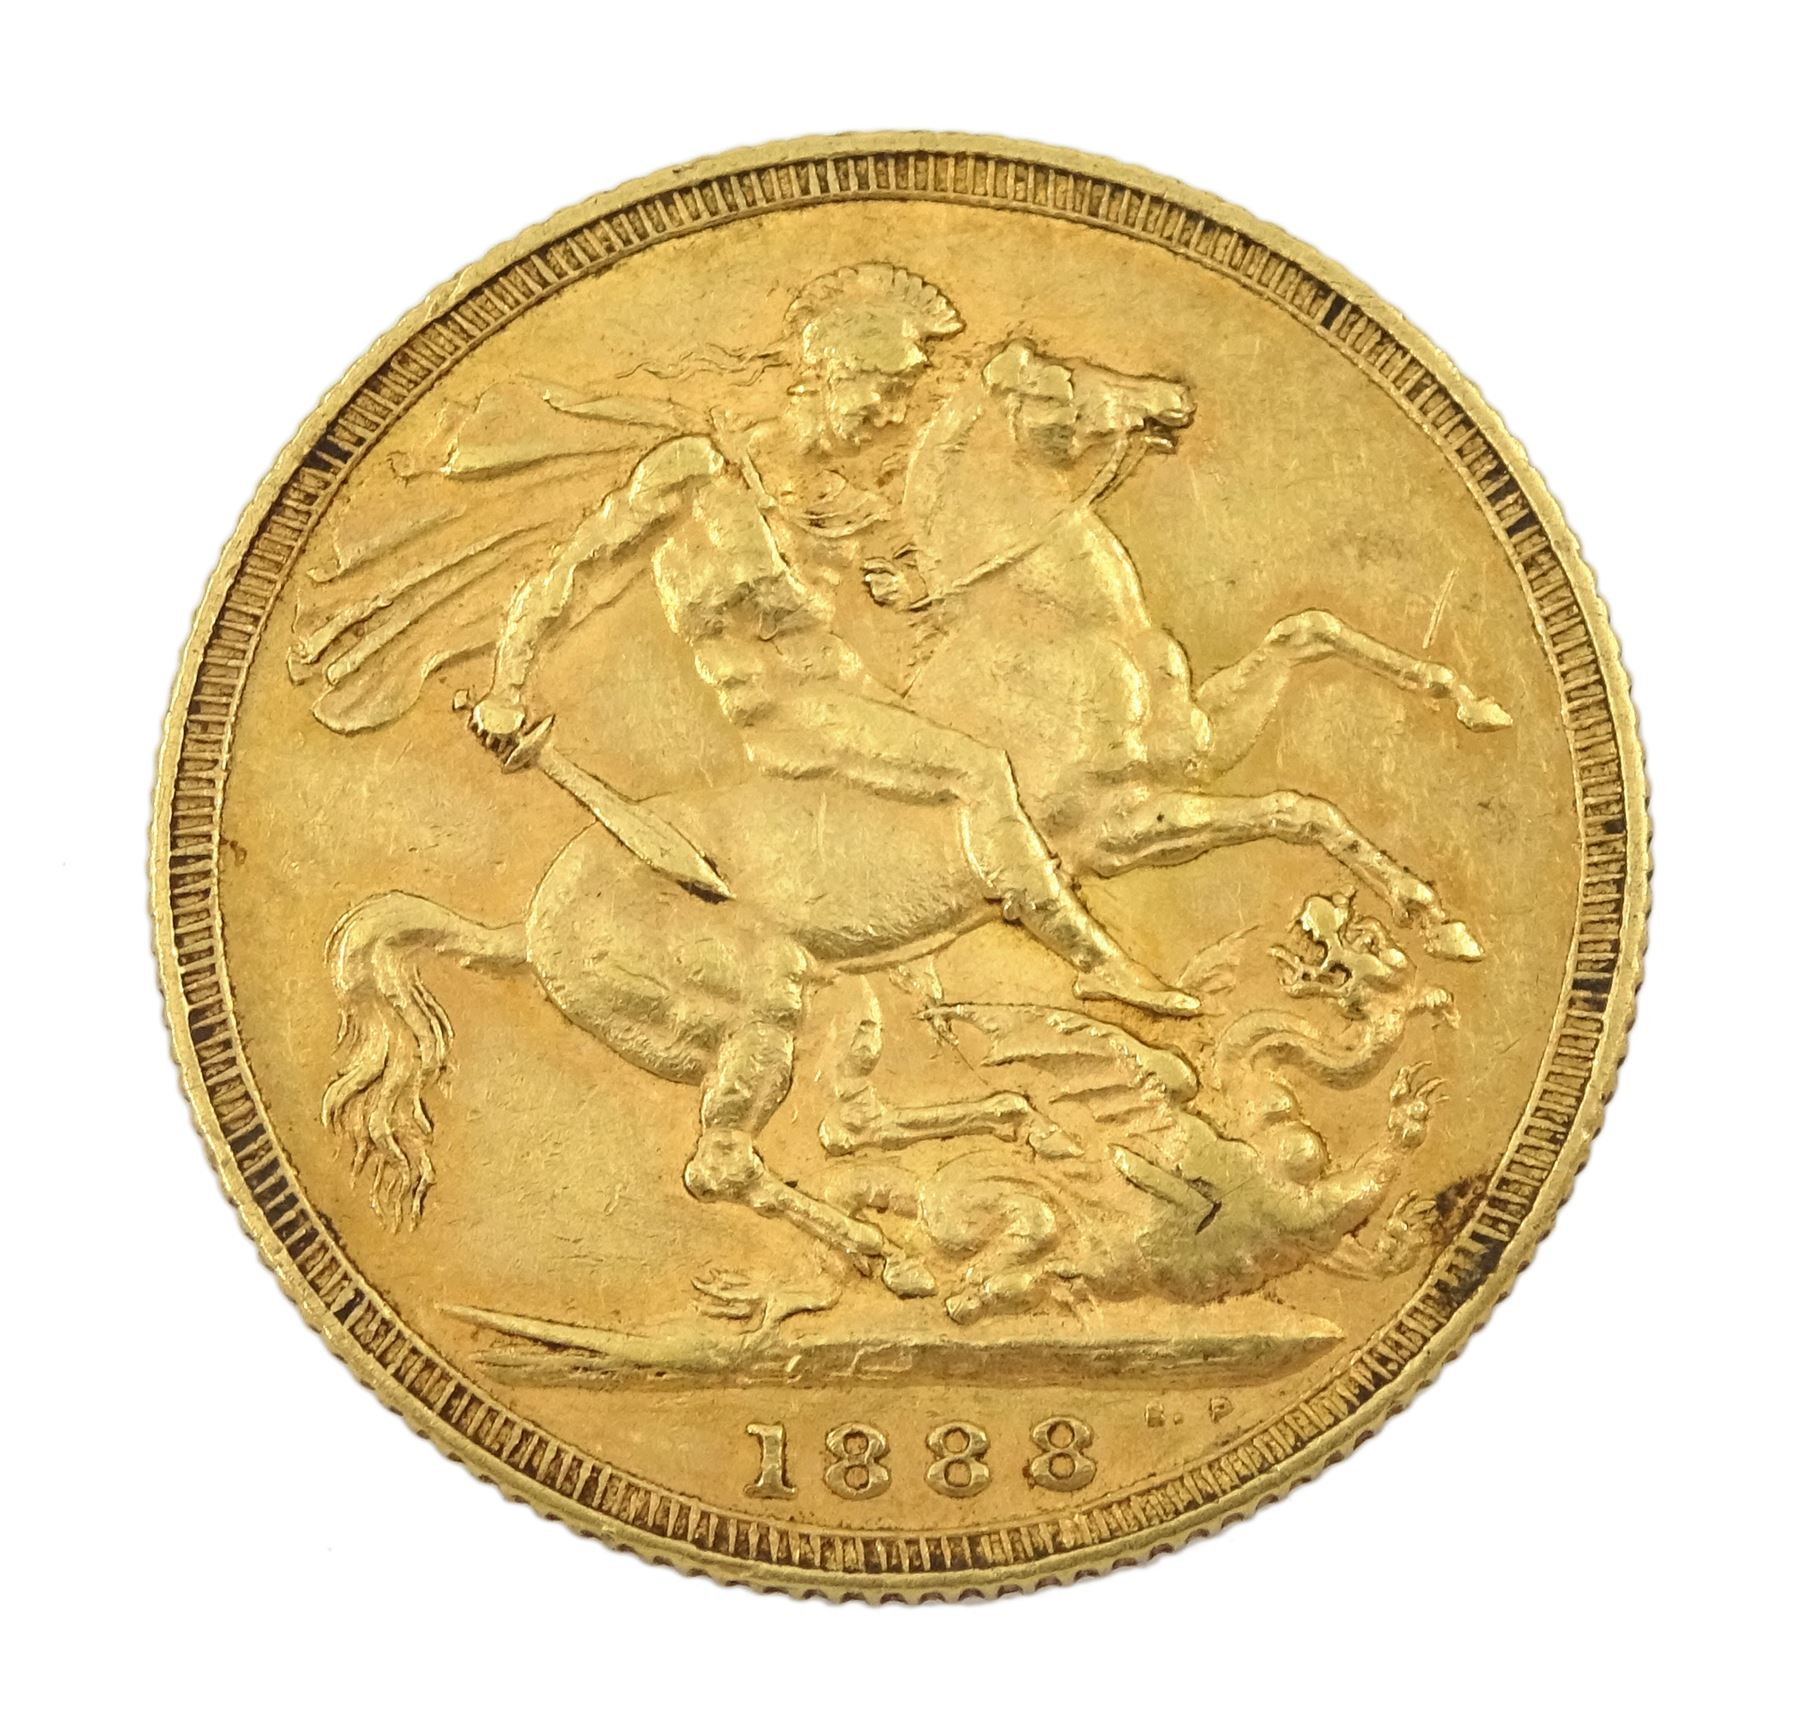 Queen Victoria 1888 gold full sovereign coin - Image 2 of 2